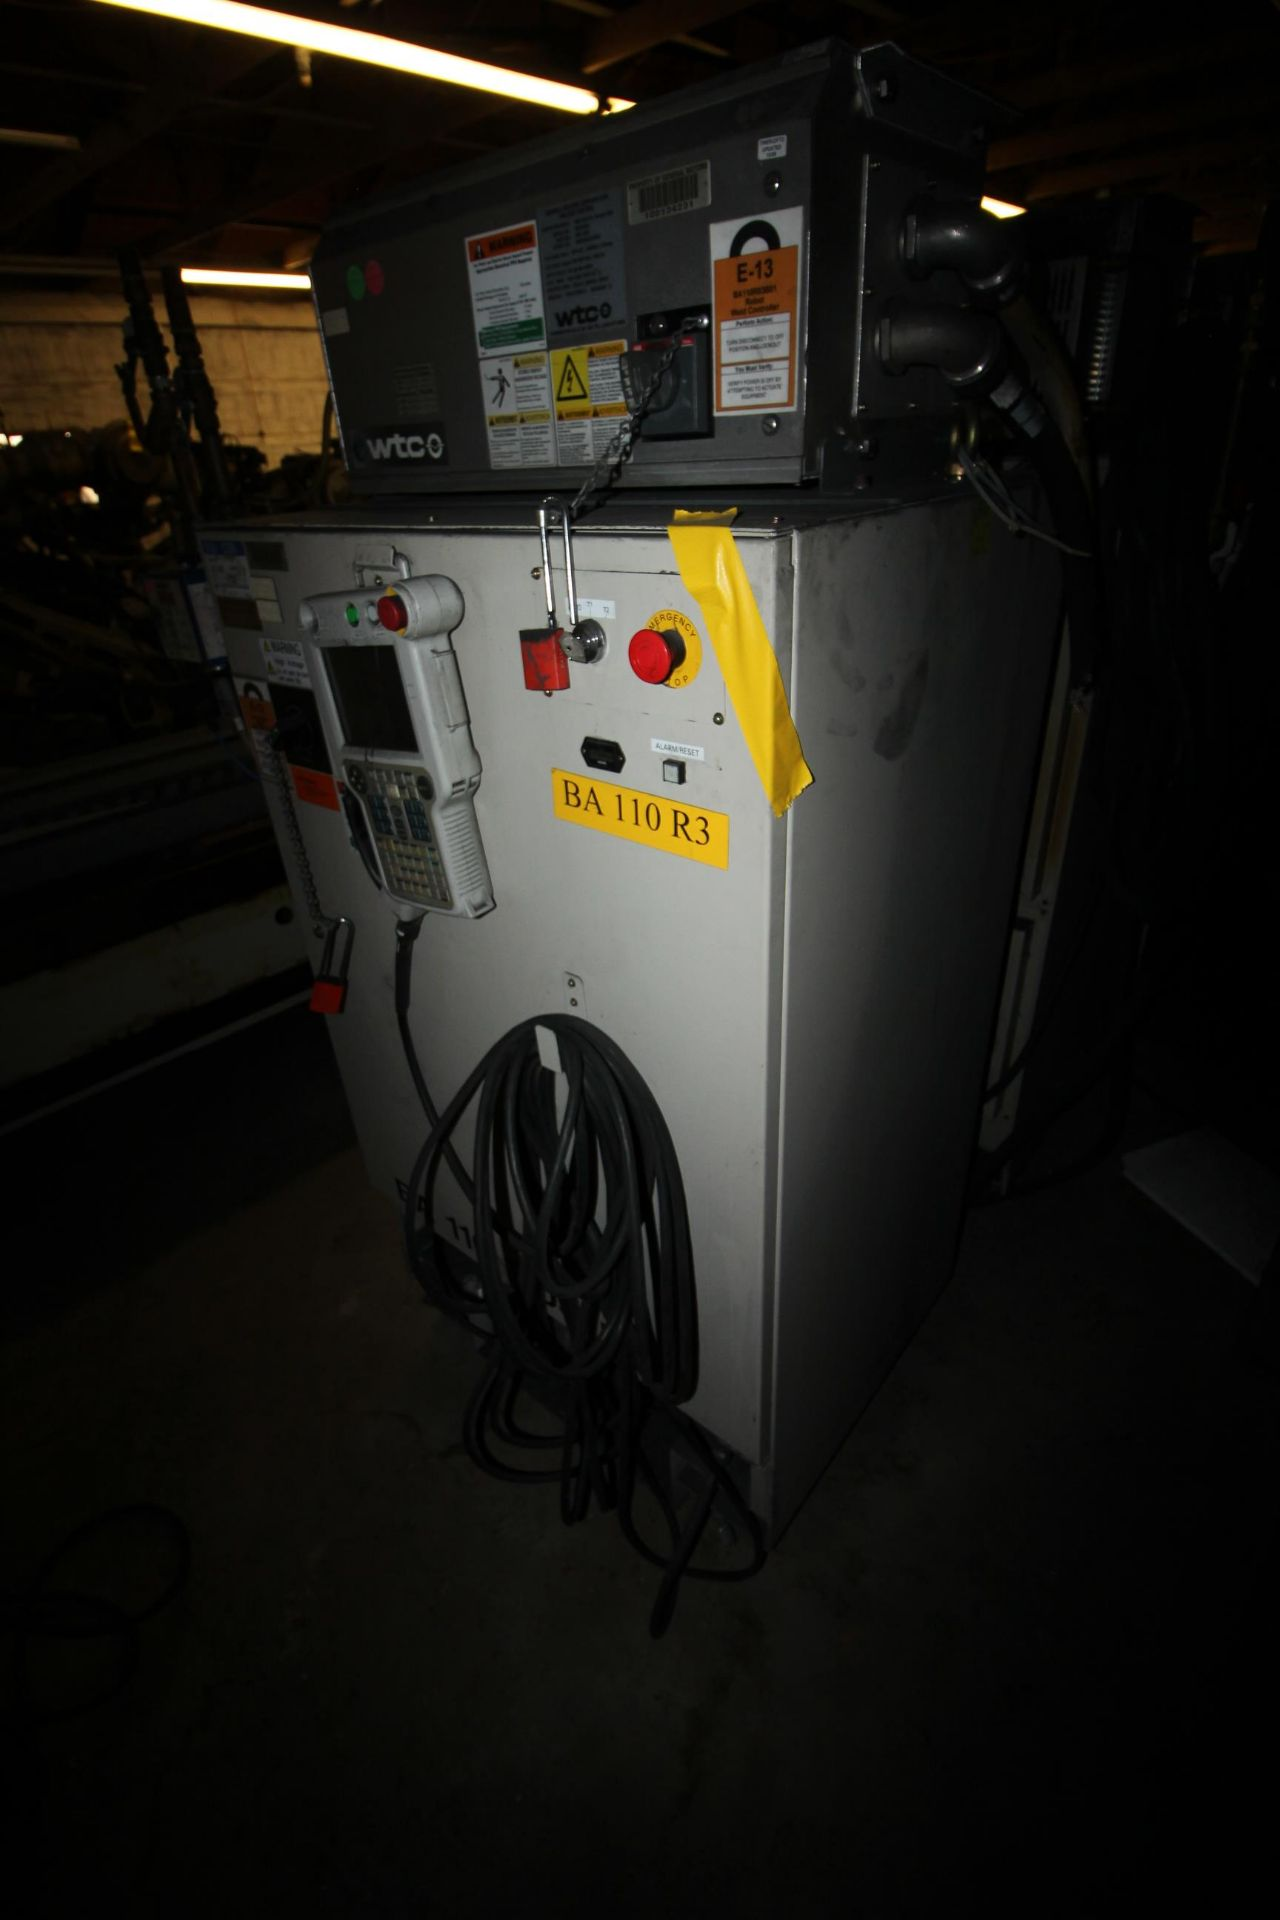 MOTOMAN ROBOT ES200N, NX100 CONTROL, SN S5M255-1-2, YEAR 2006, CABLES AND TEACH PENDANT - Image 5 of 11